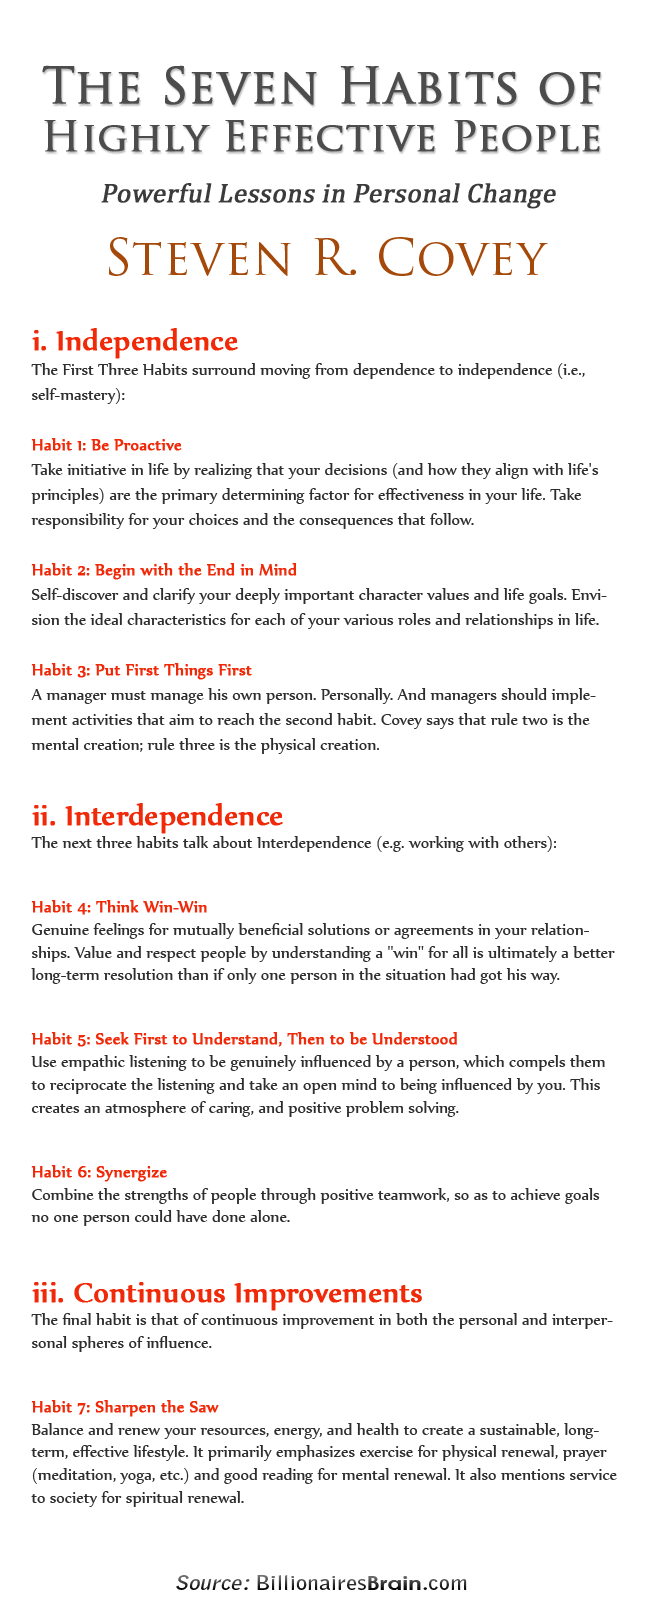 an analysis of the 7 habits of highly effective people a self improvement book by stephen r covey Cover of the 7 habits of highly effective people stephen covey died last week  he pioneered the business self-help genre with the 1989 publication of his mega -hit book the seven habits of highly effective people when i.